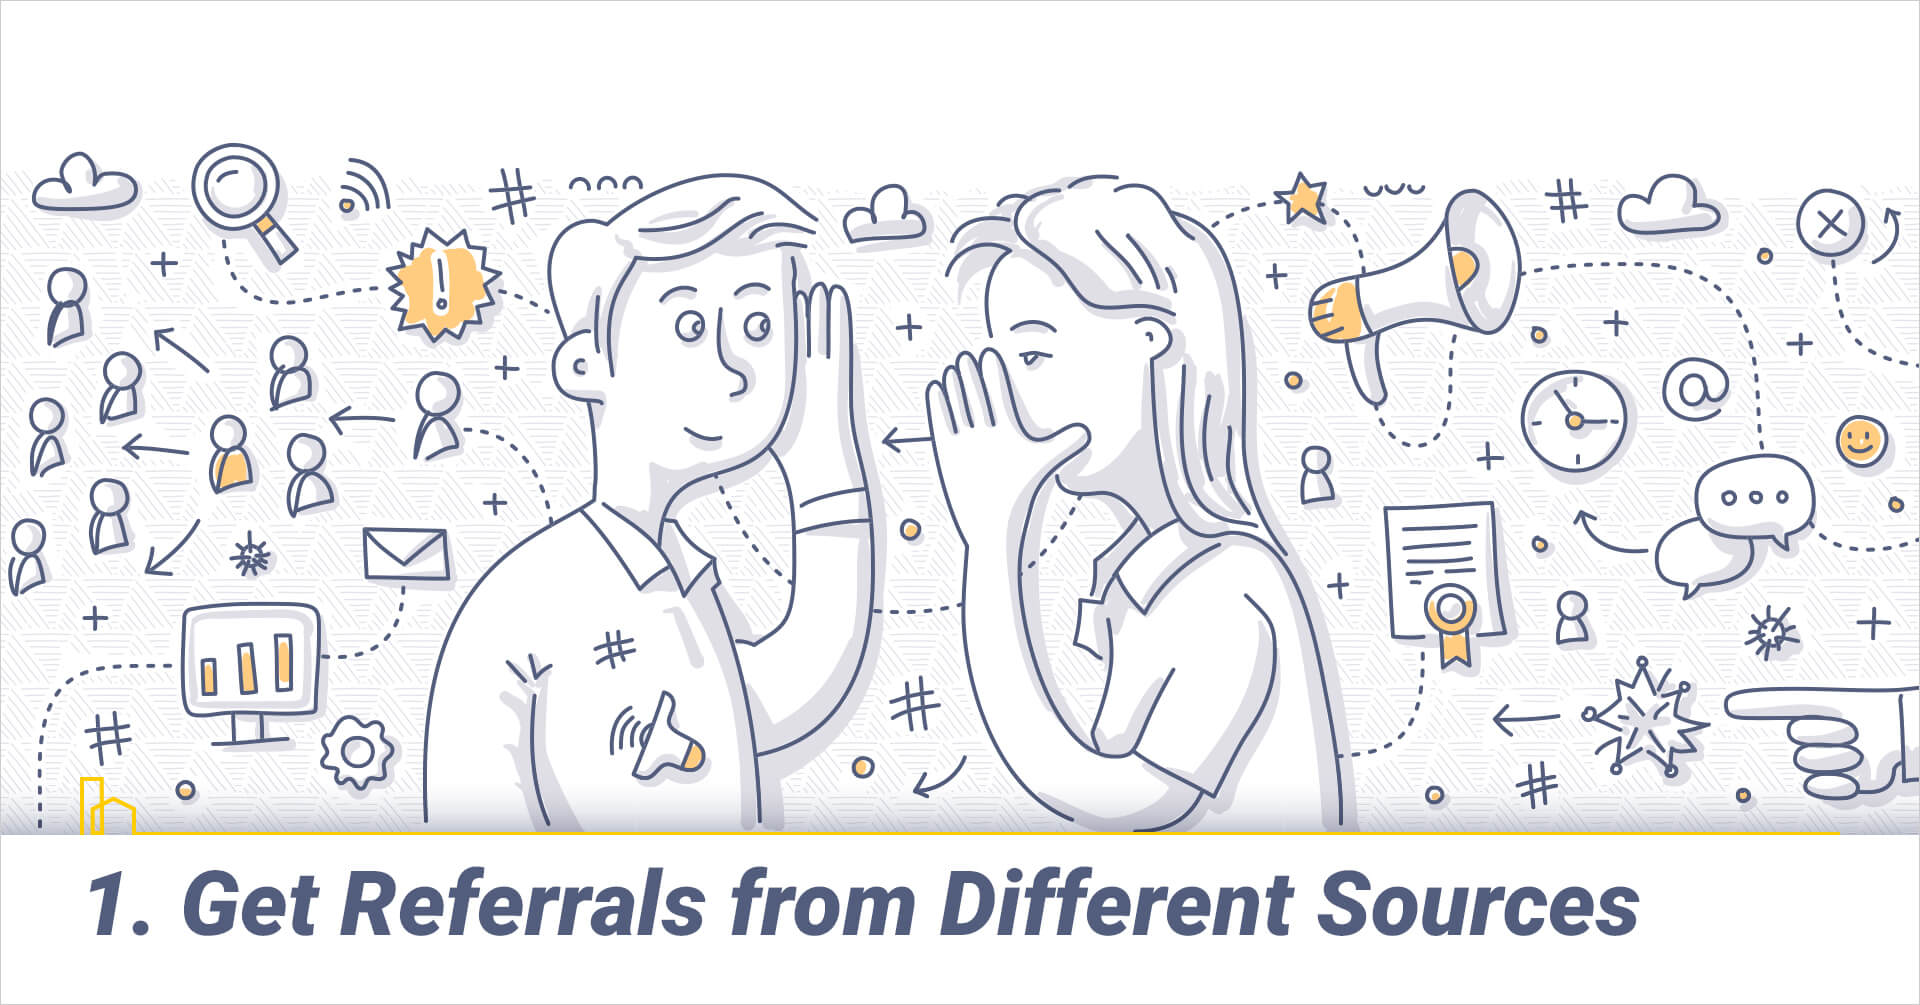 Get Referrals from Different Sources